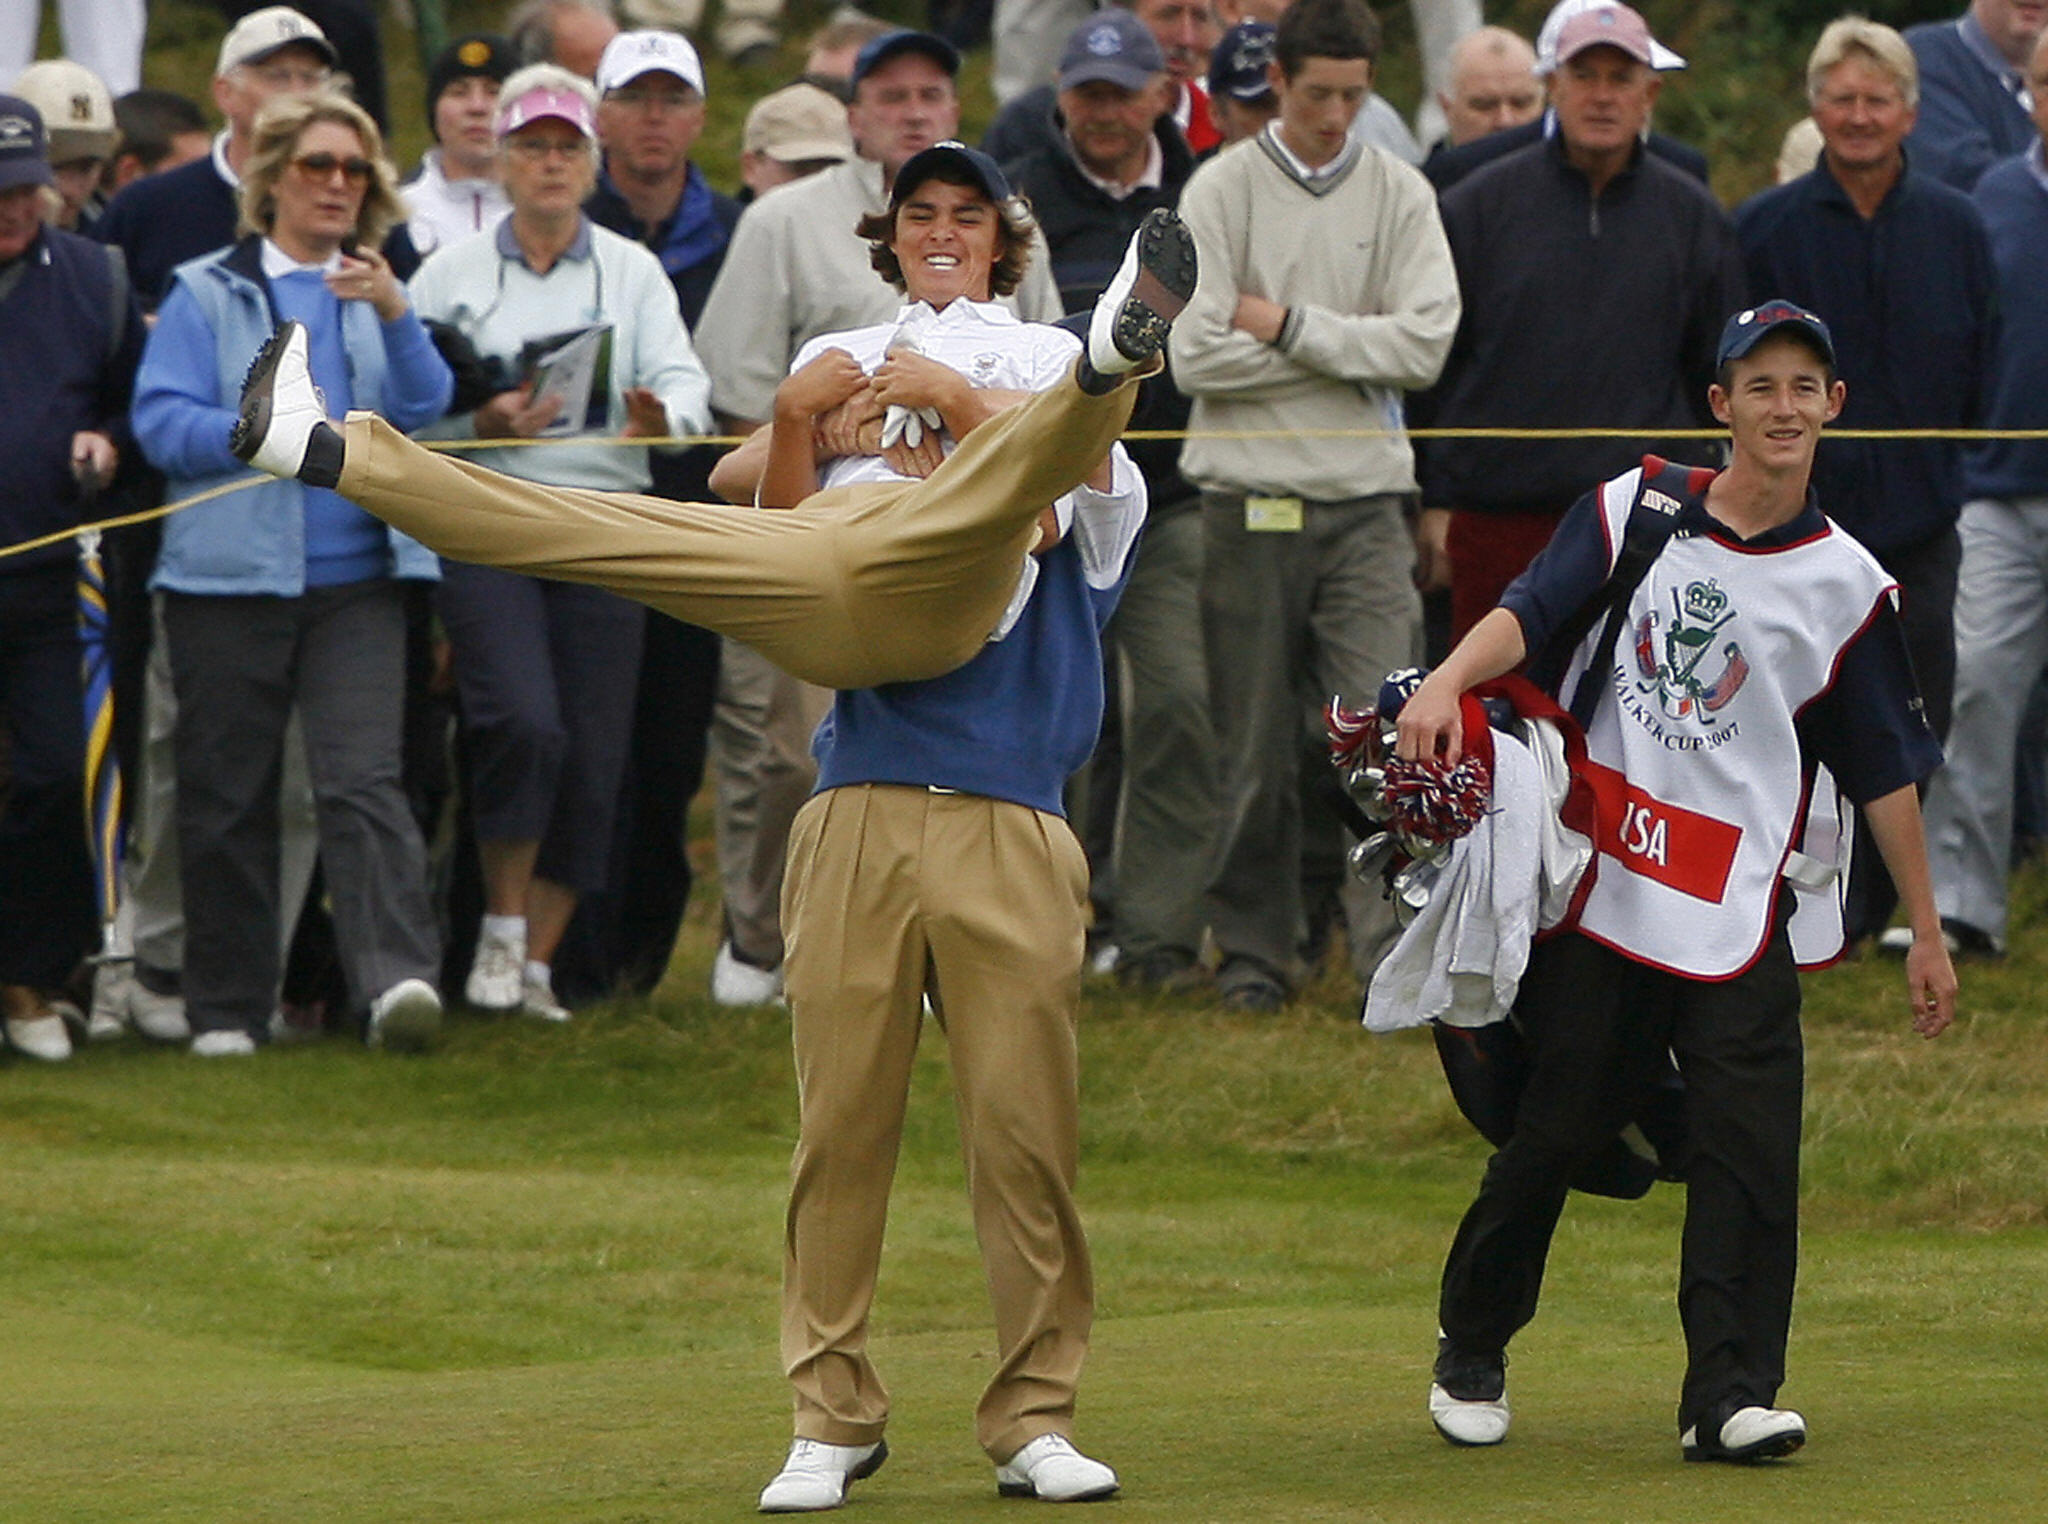 Billy Horschel lifts Rickie Fowler after the Californian chips in during the 2007 Walker Cup (Photo: PETER MUHLY/AFP/Getty Images)